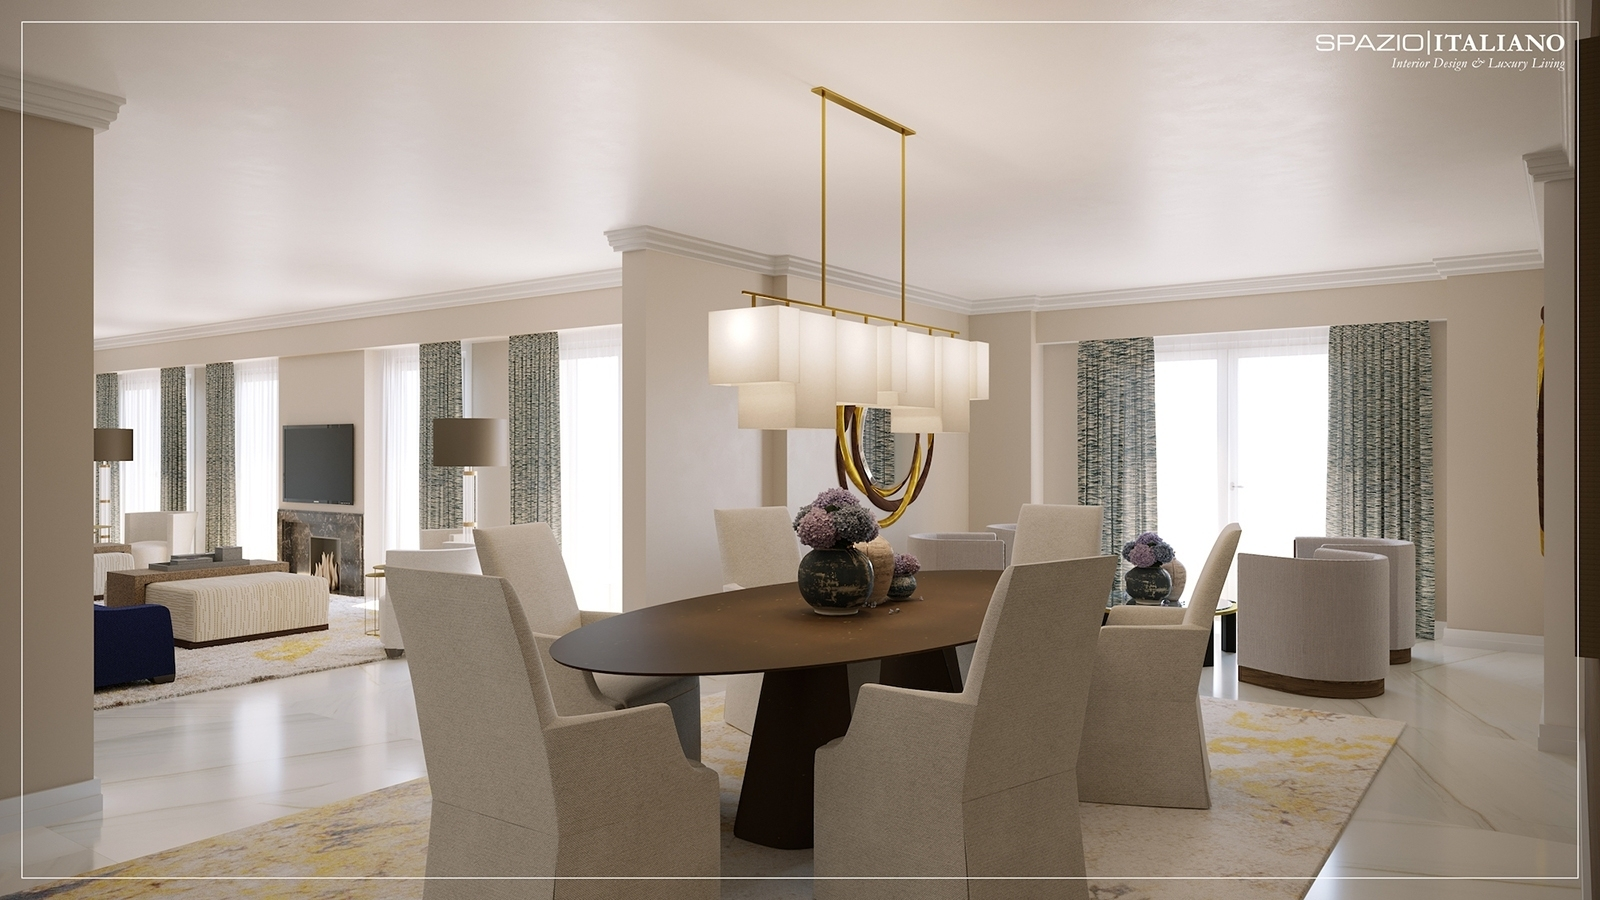 John Taylor Villa Hermosa shares why home staging is important